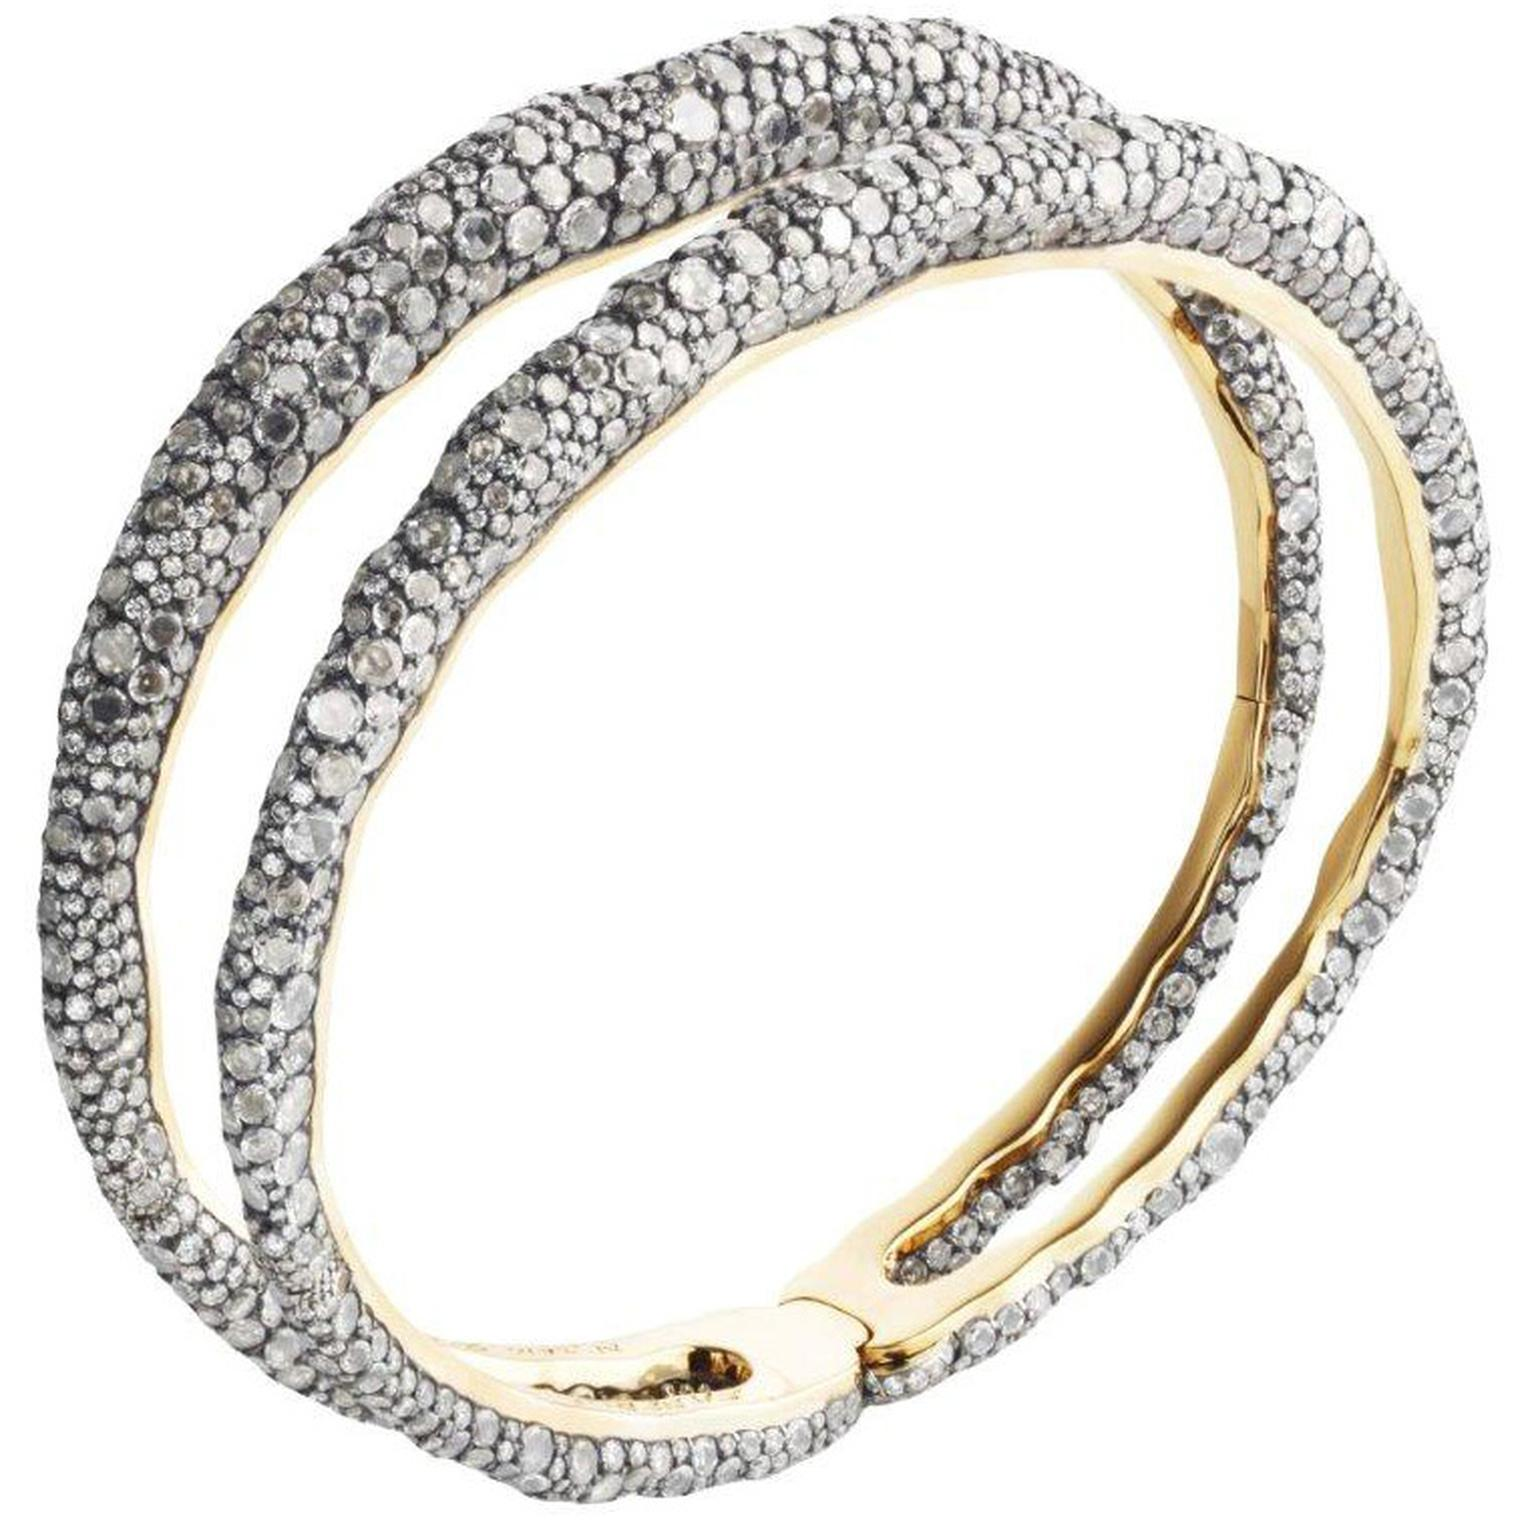 Faberge-Charmeuse-Bangle.jpg